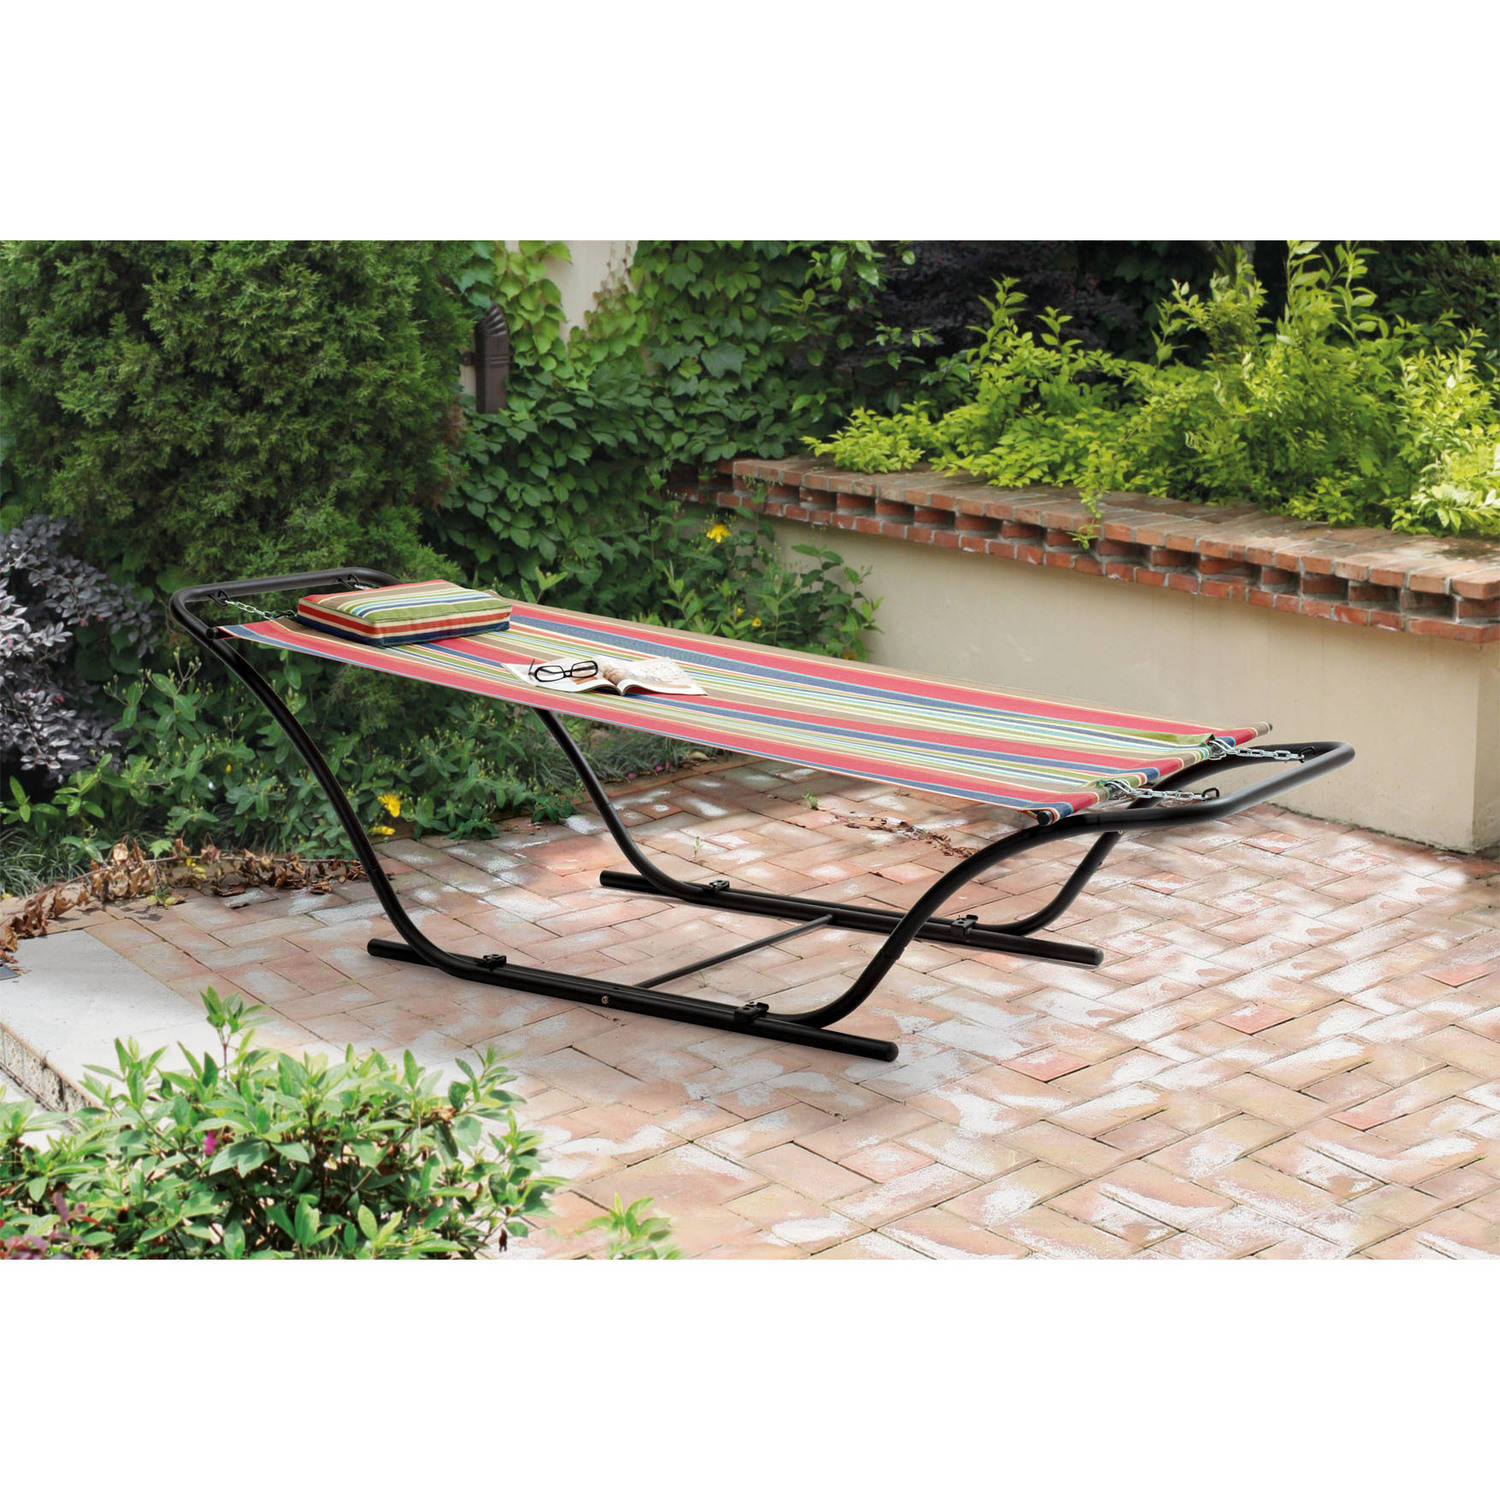 Mainstays Folding Sling Hammock with Stand, Red